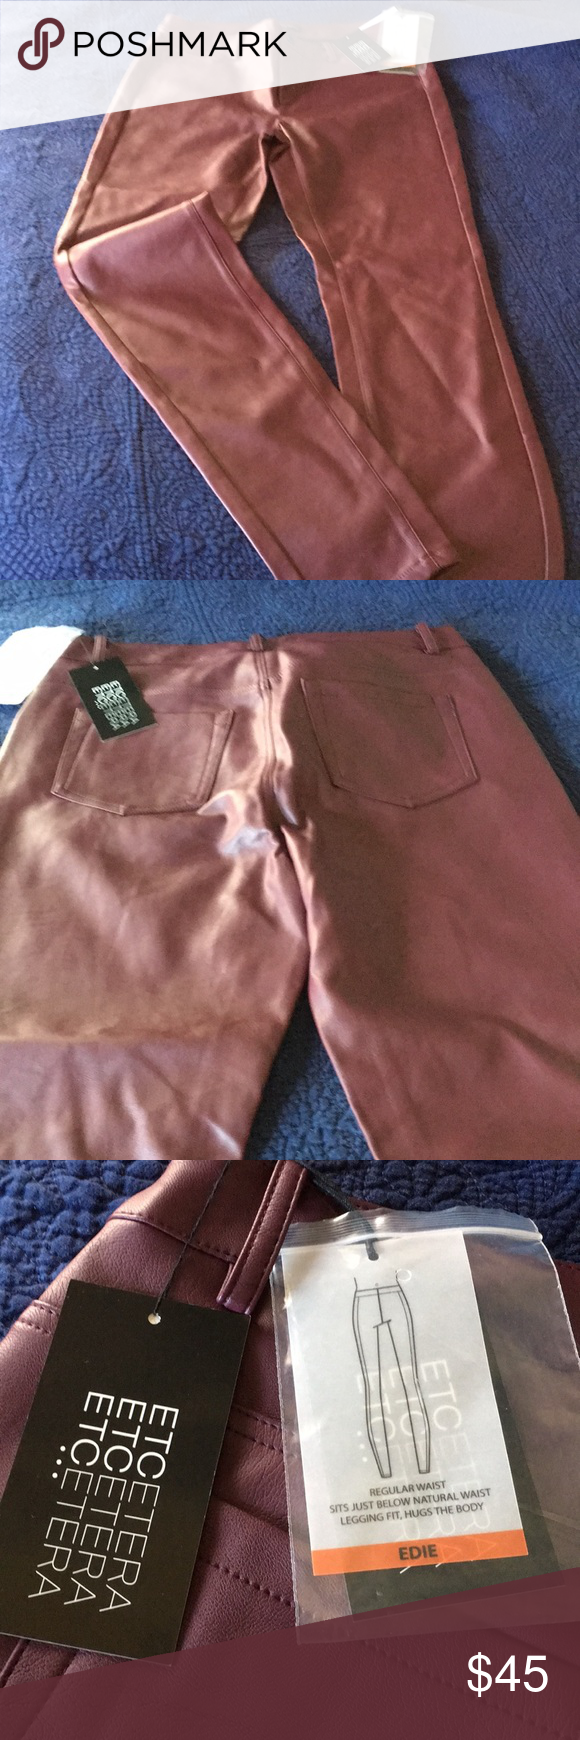 Etcetera Vegan Leather Pants Nwt Nwt Leather Pants Vegan Leather Pants